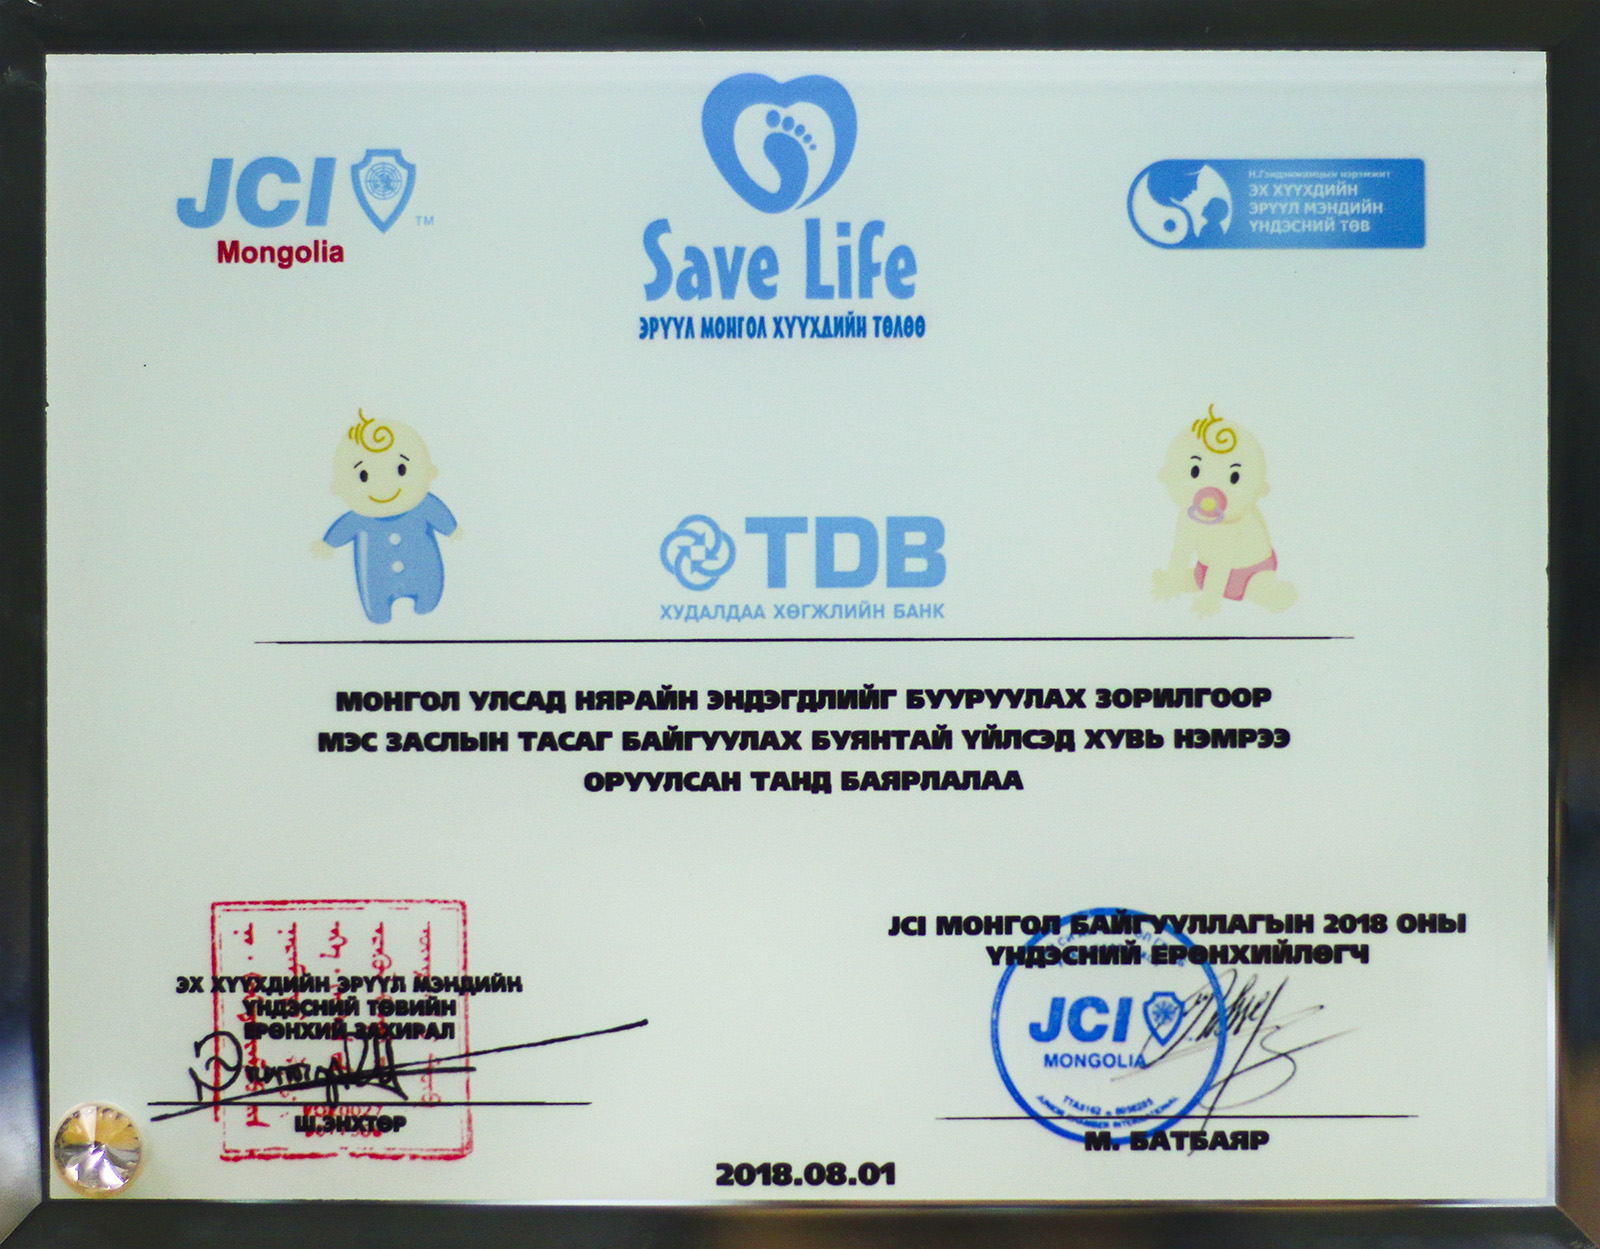 """TRADE AND DEVELOPMENT BANK CONTINUALLY WORK WITH """"SAVE LIFE"""